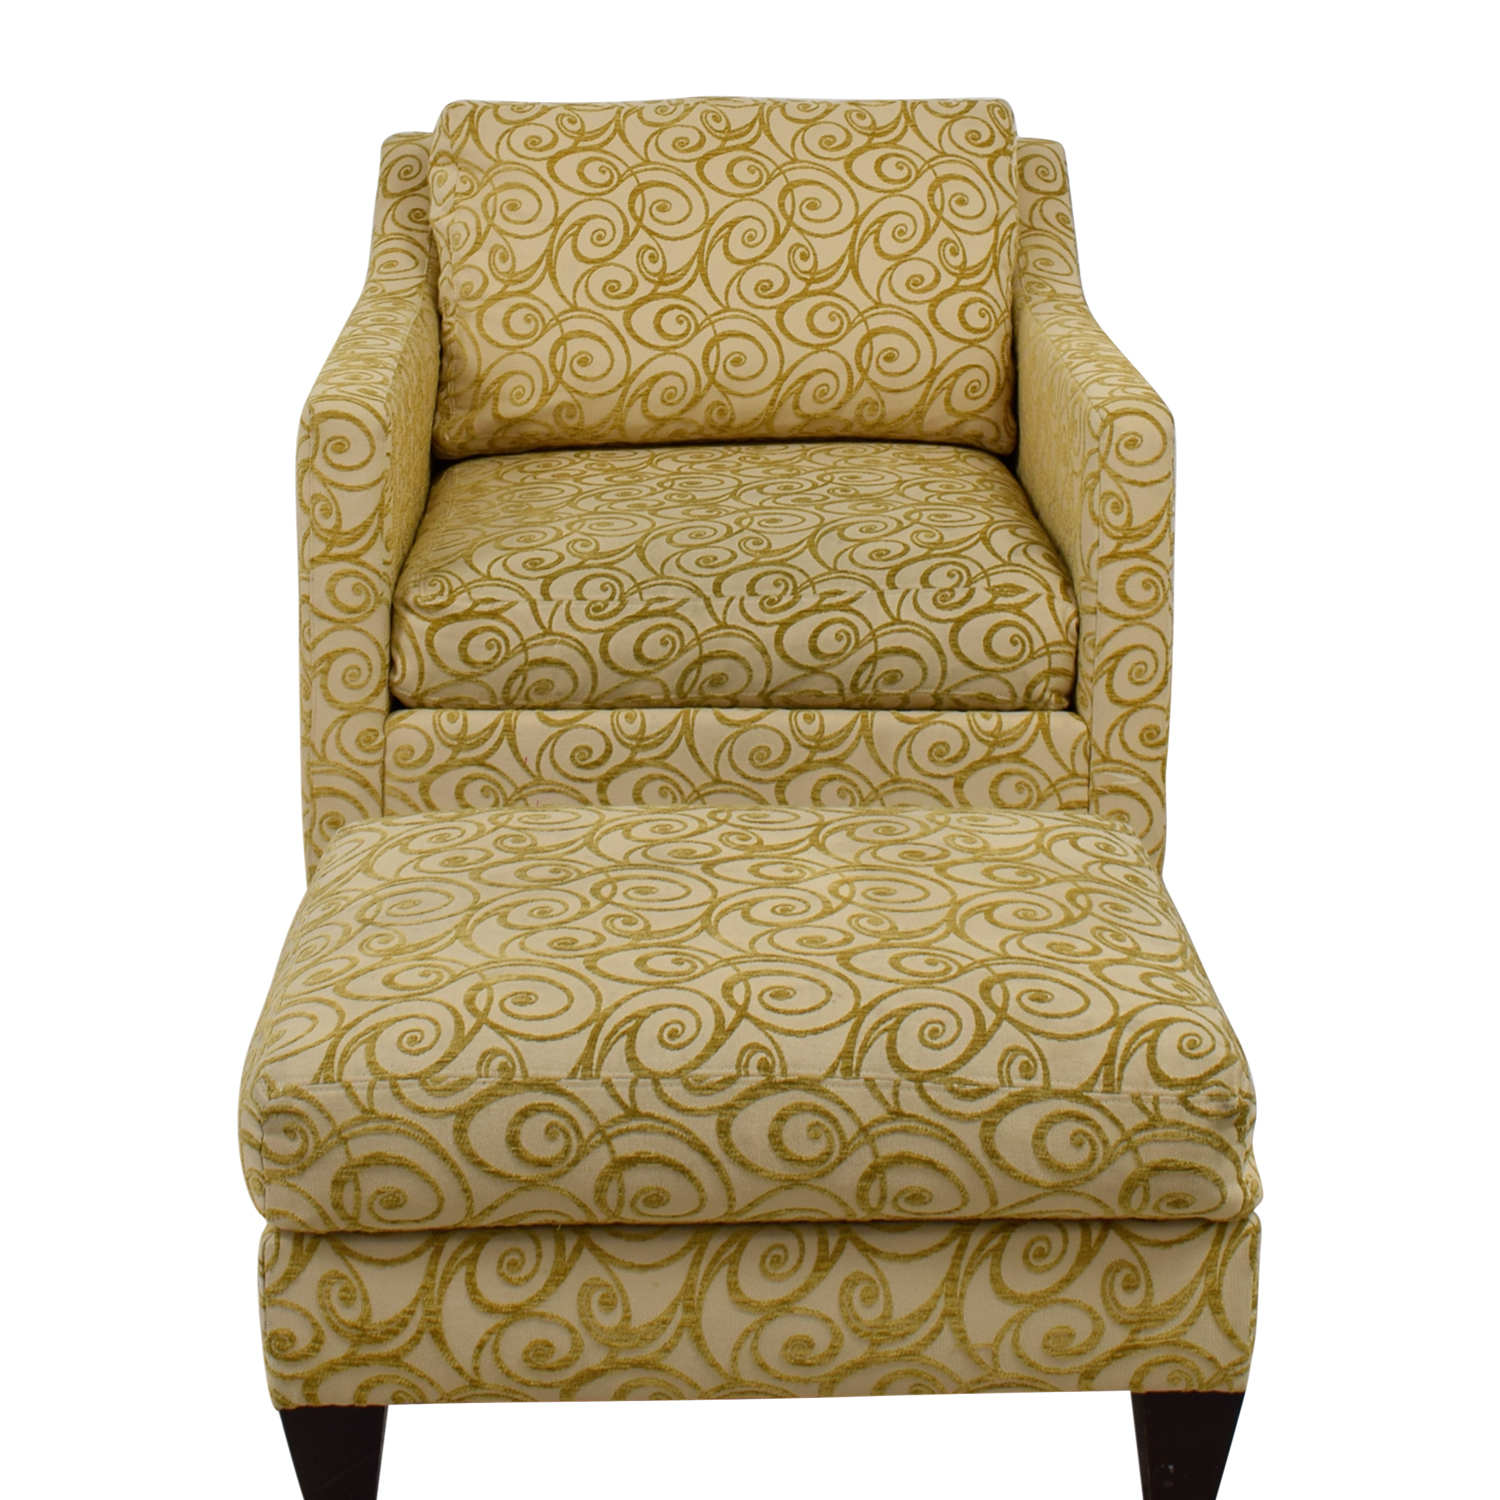 Ethan Allen Ethan Allen Beige and Gold Monterey Chair and Ottoman